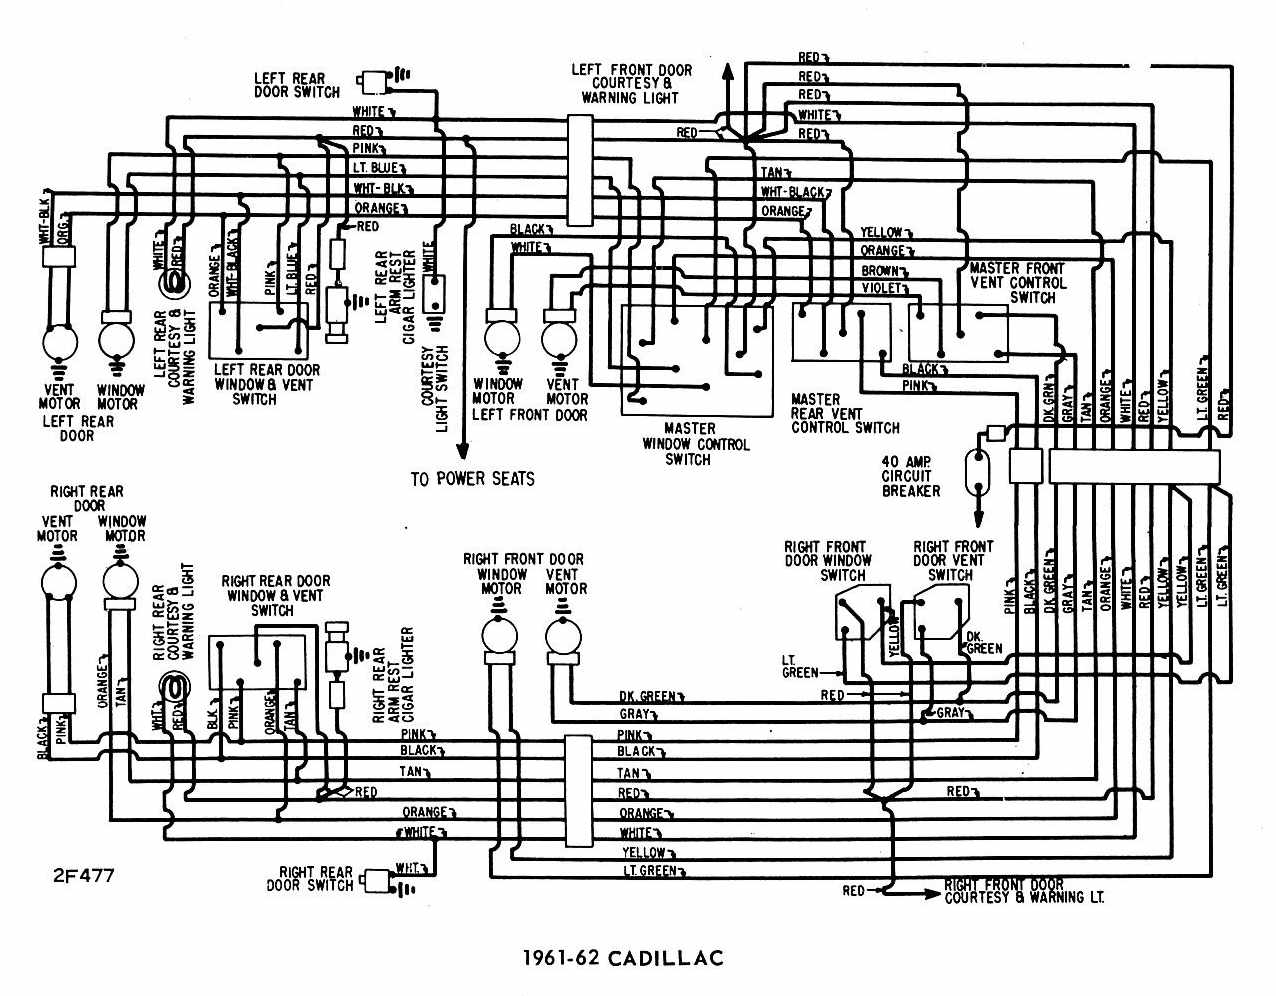 Cadillac Car Manuals Wiring Diagrams Pdf Fault Codes Isuzu Radio Diagram Red Gray Download